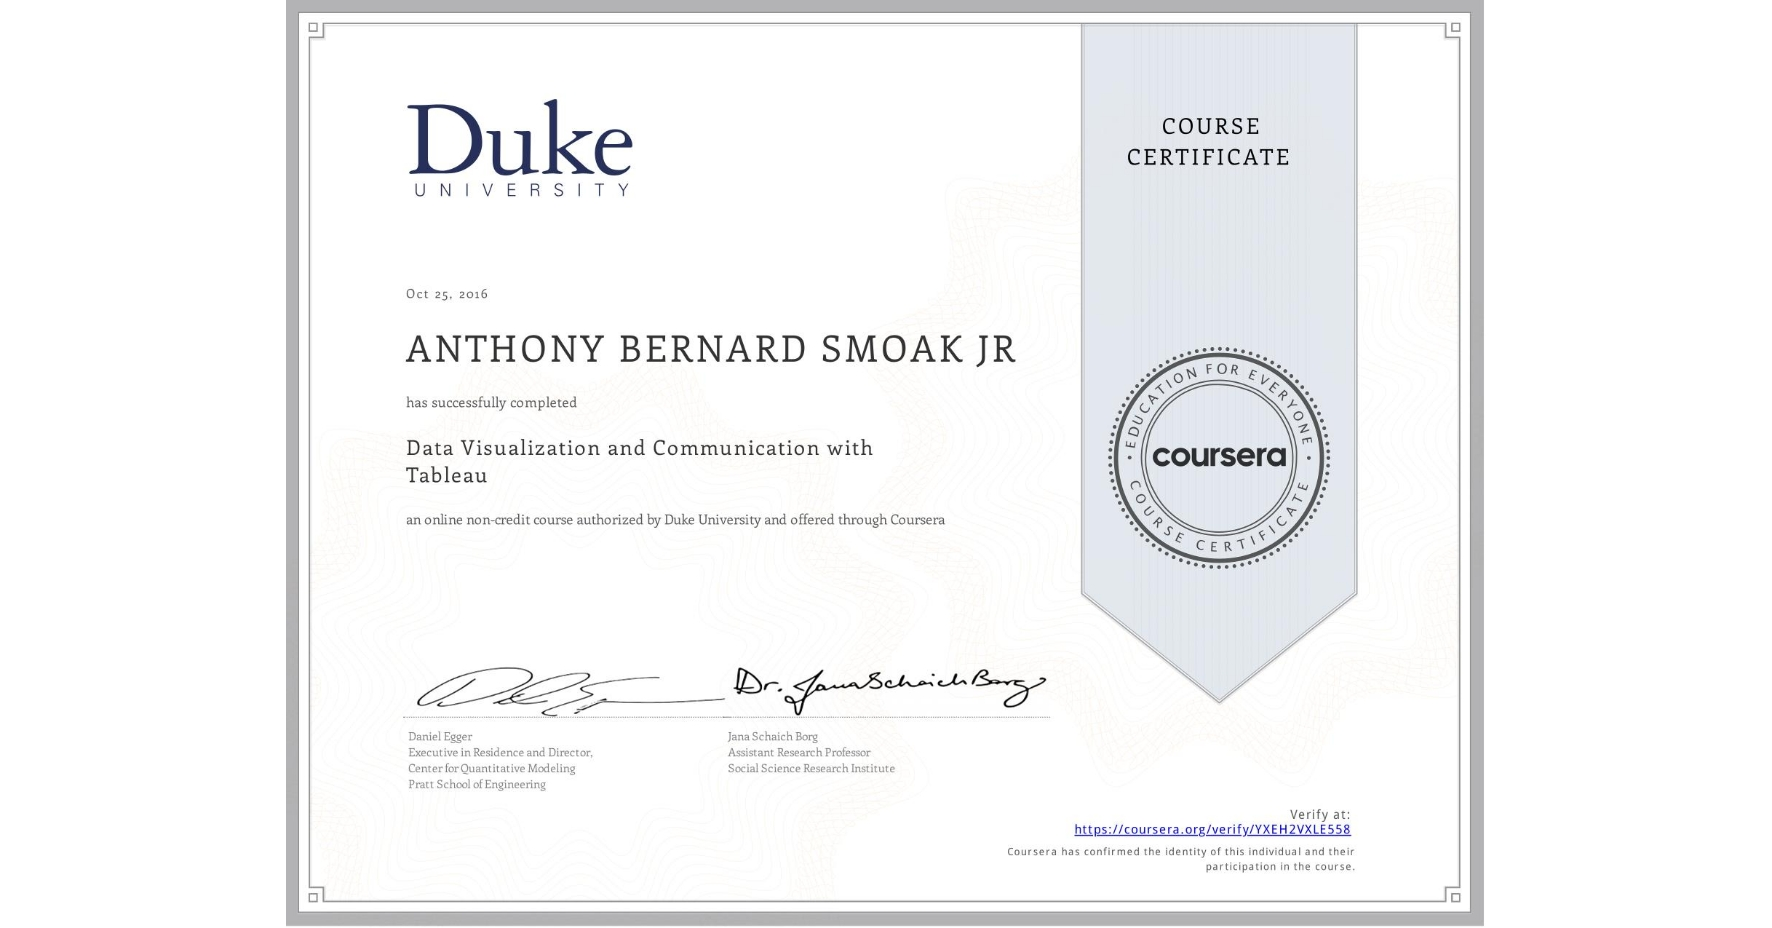 View certificate for ANTHONY BERNARD  SMOAK JR, Data Visualization and Communication with Tableau, an online non-credit course authorized by Duke University and offered through Coursera